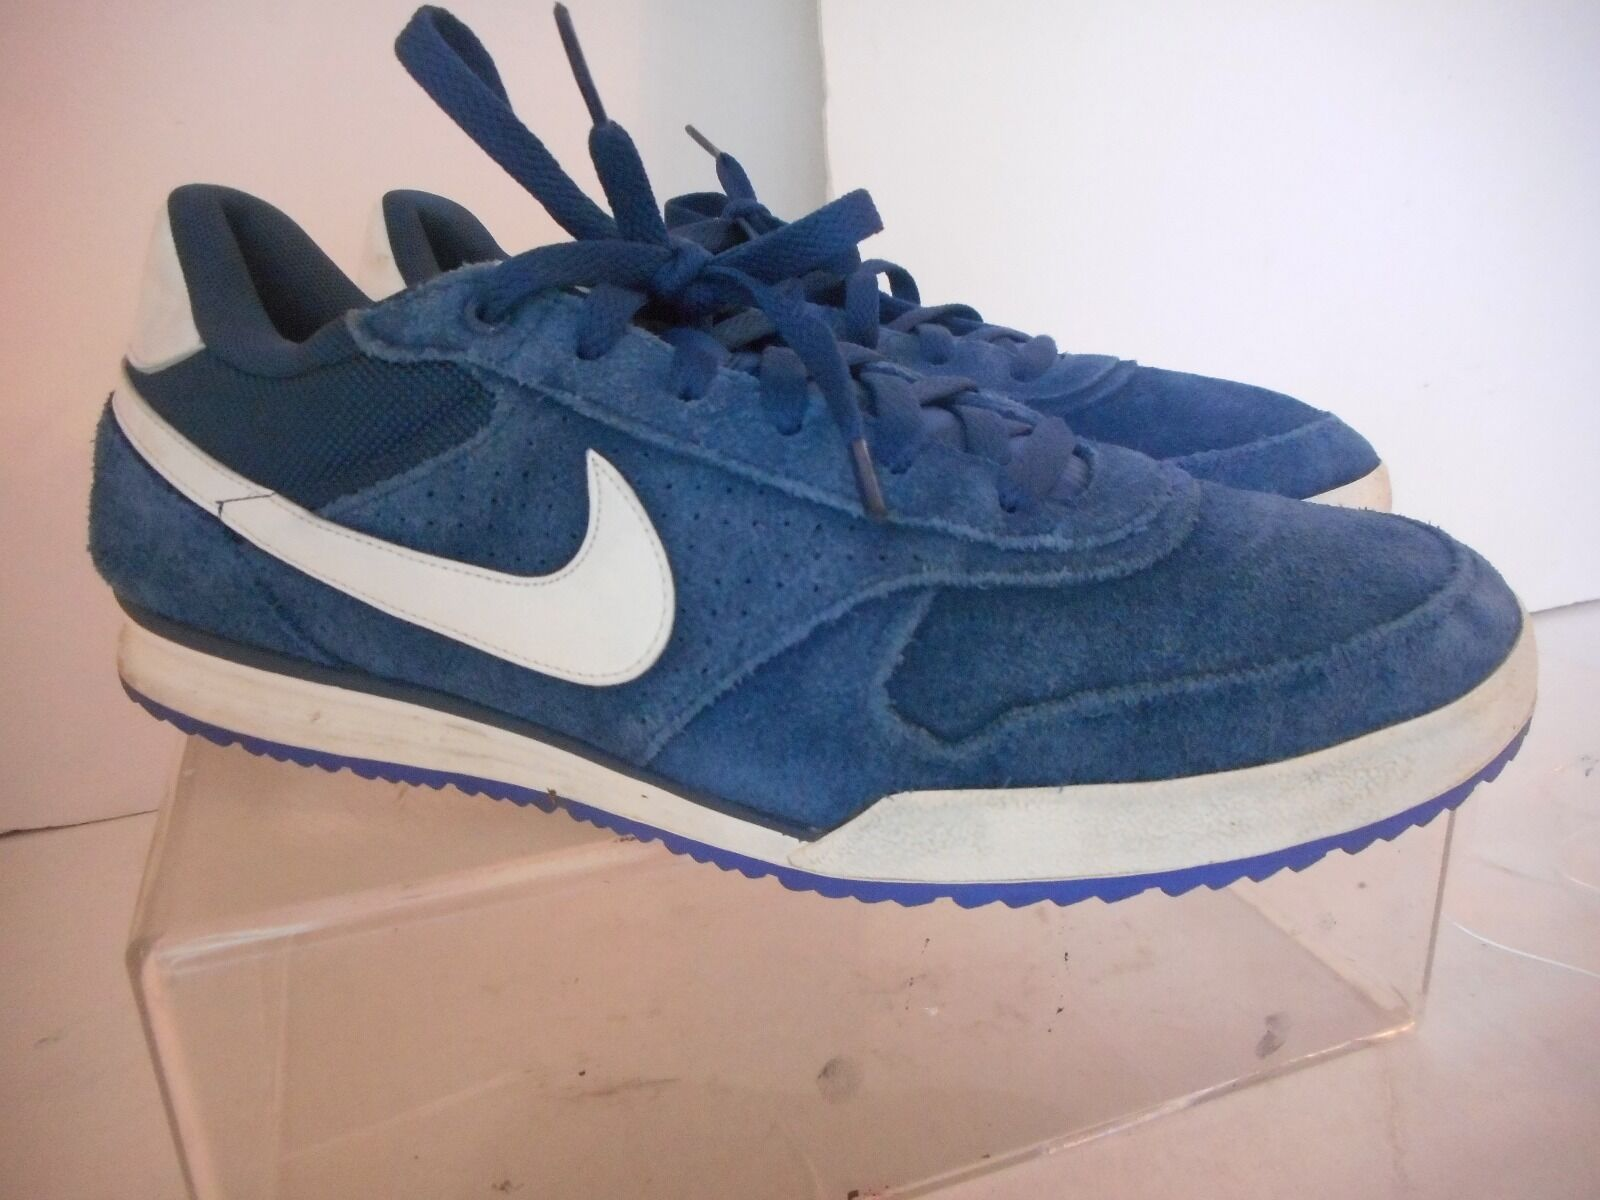 Nike Field Trainer Leather Men's Shoes Multi-Color Shoes Leather 443918 Sz 10.5